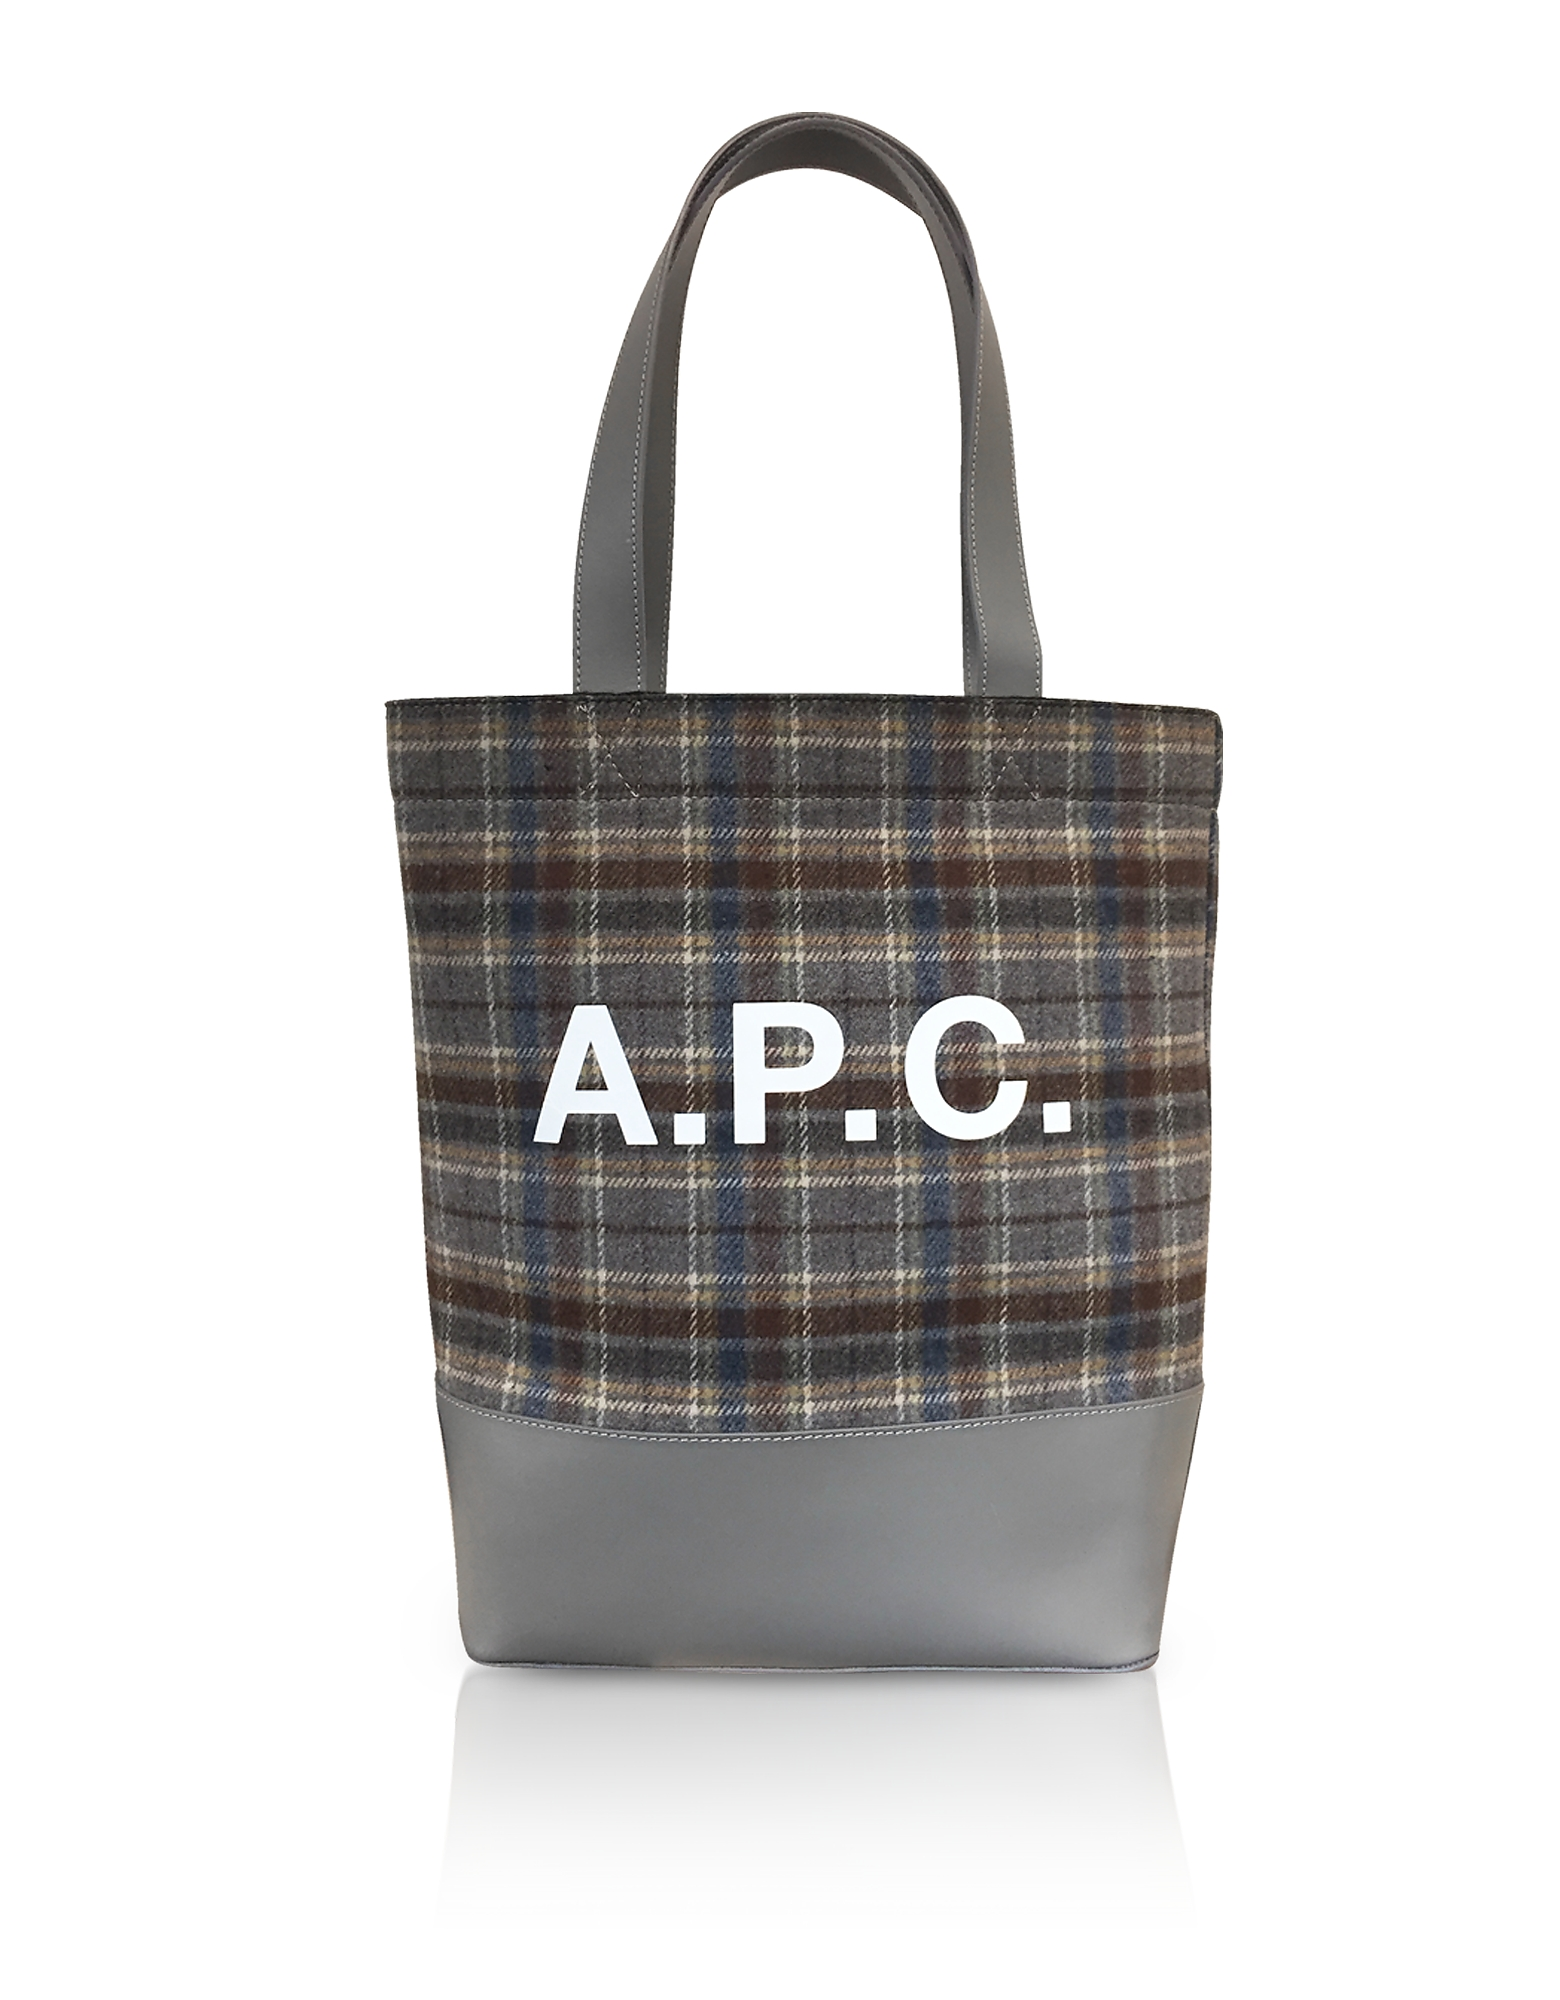 Axel Shopper inTessuto Tartan e Pelle